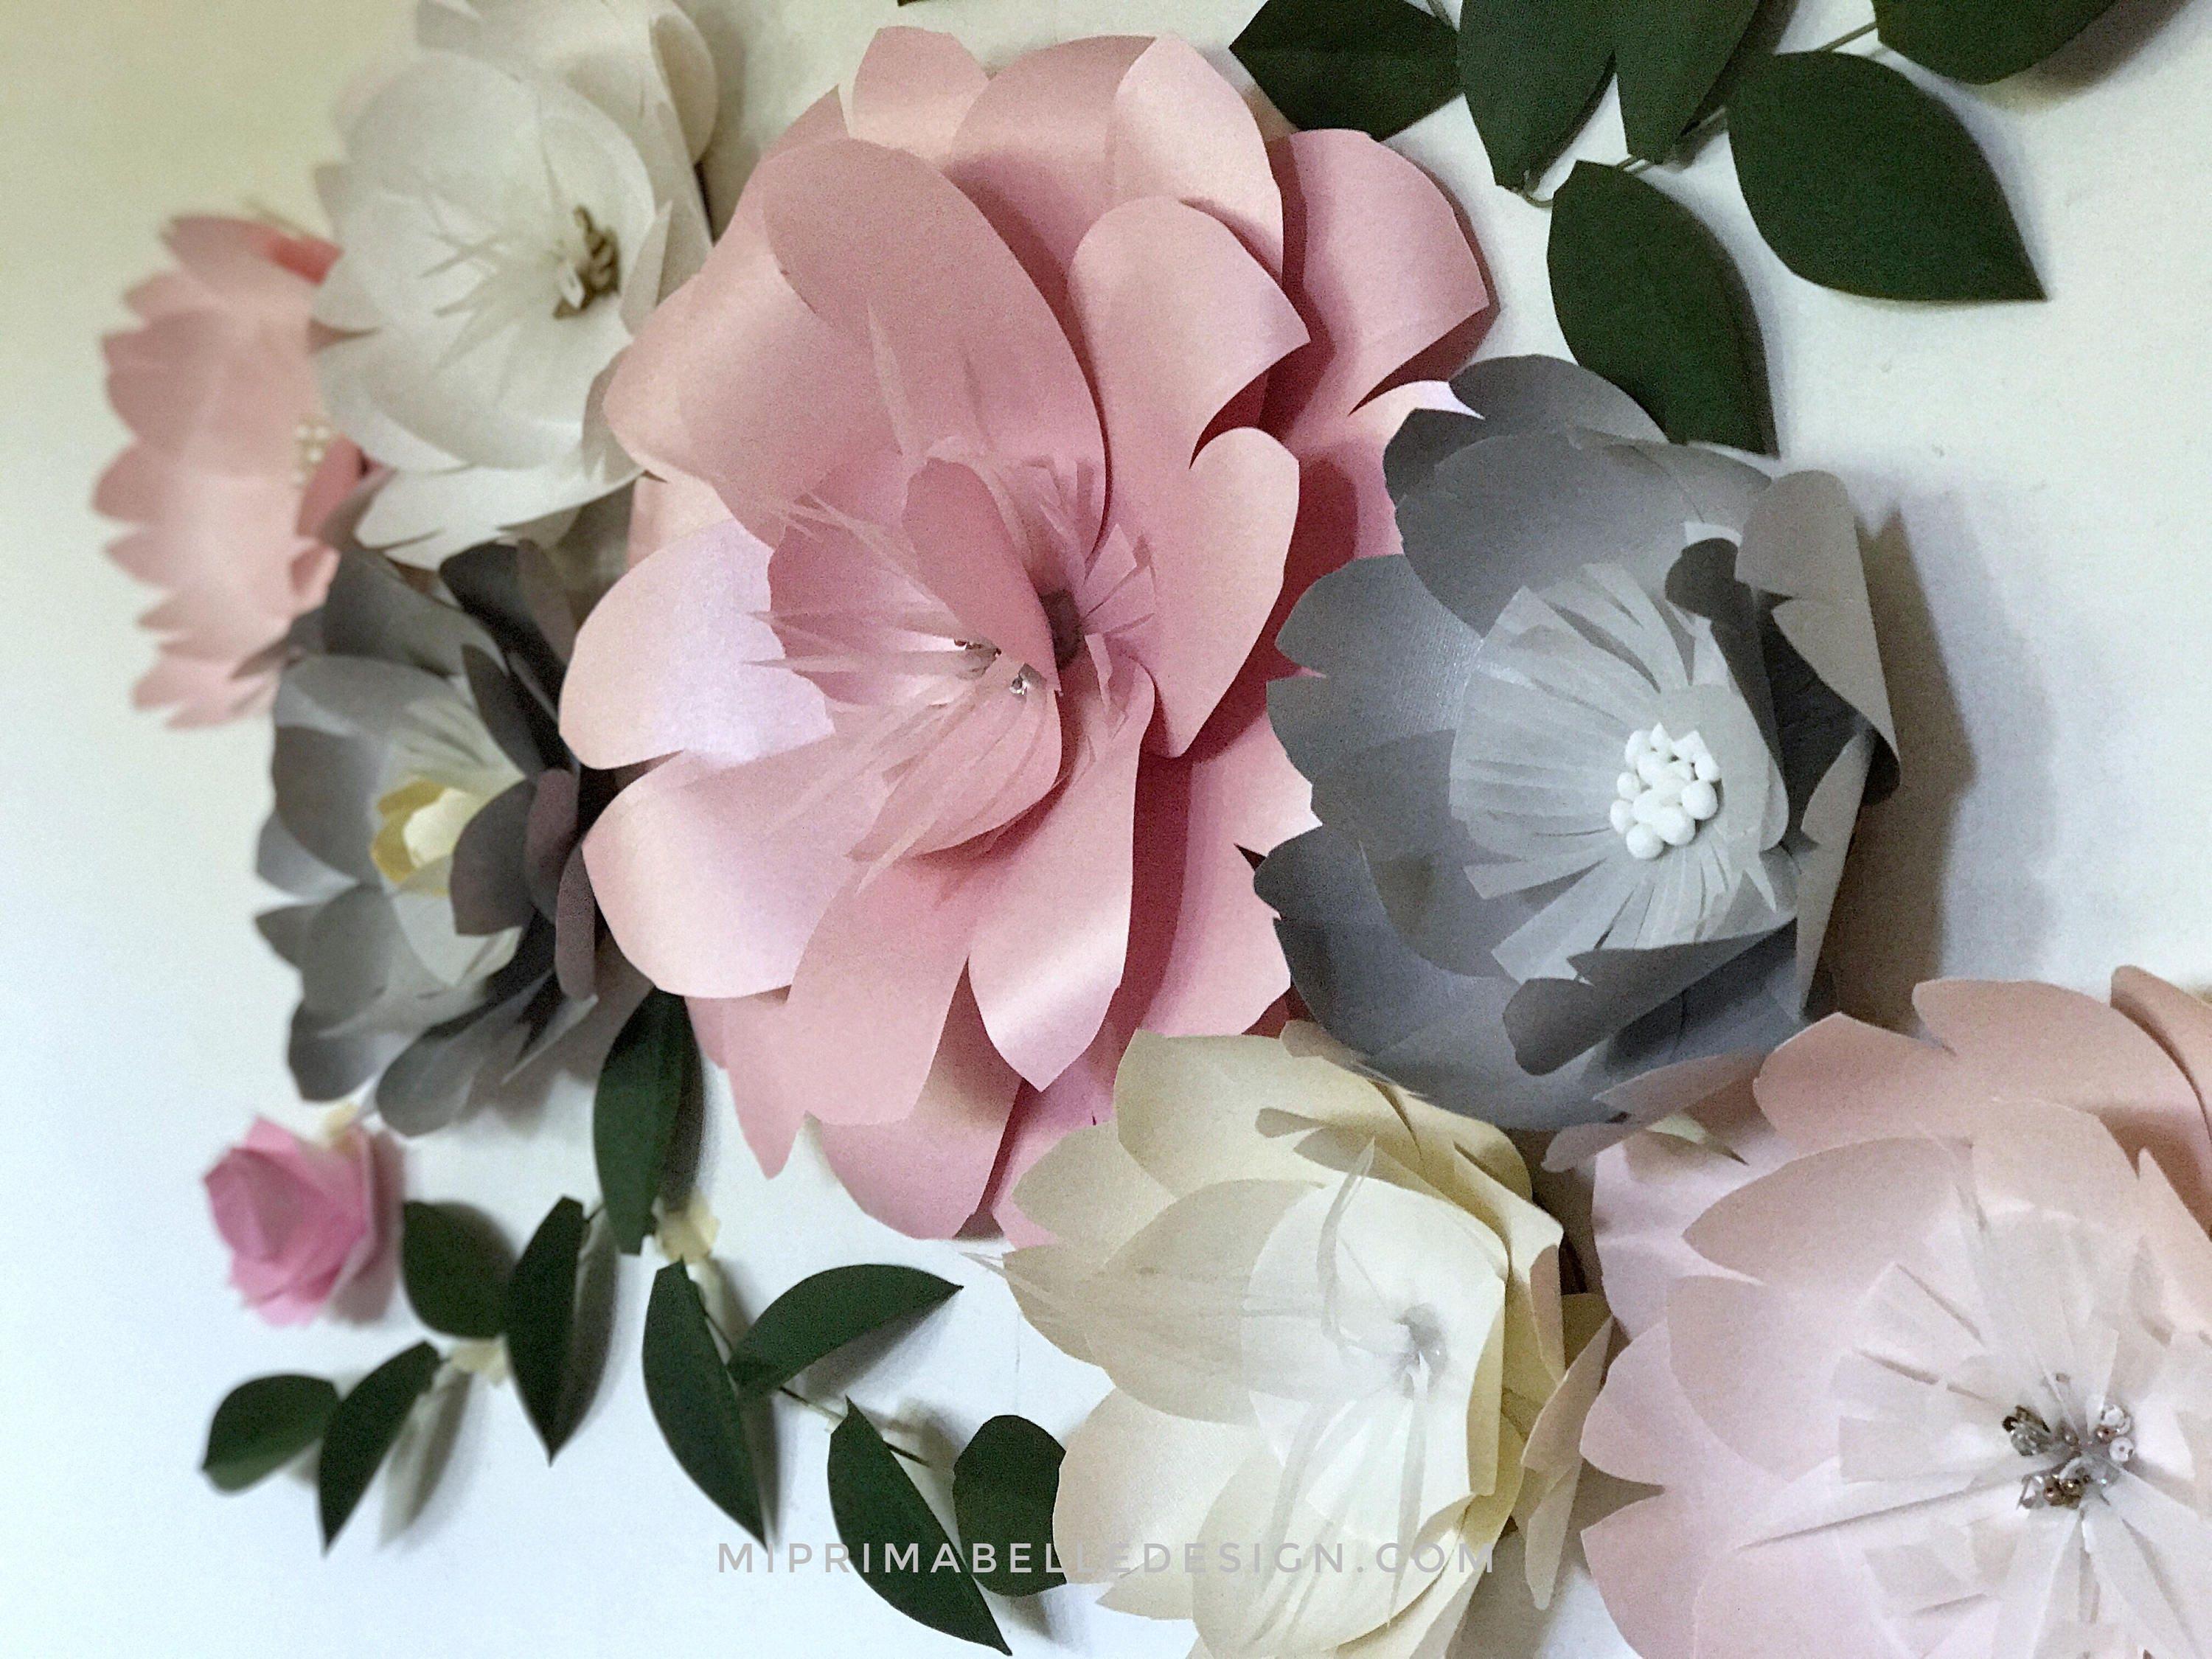 Paper flower decor bejeweled flower wall decor embellished flowers paper flower decor bejeweled flower wall decor embellished flowers with pearls bedroom wall pearly paper flower wedding decor mightylinksfo Image collections